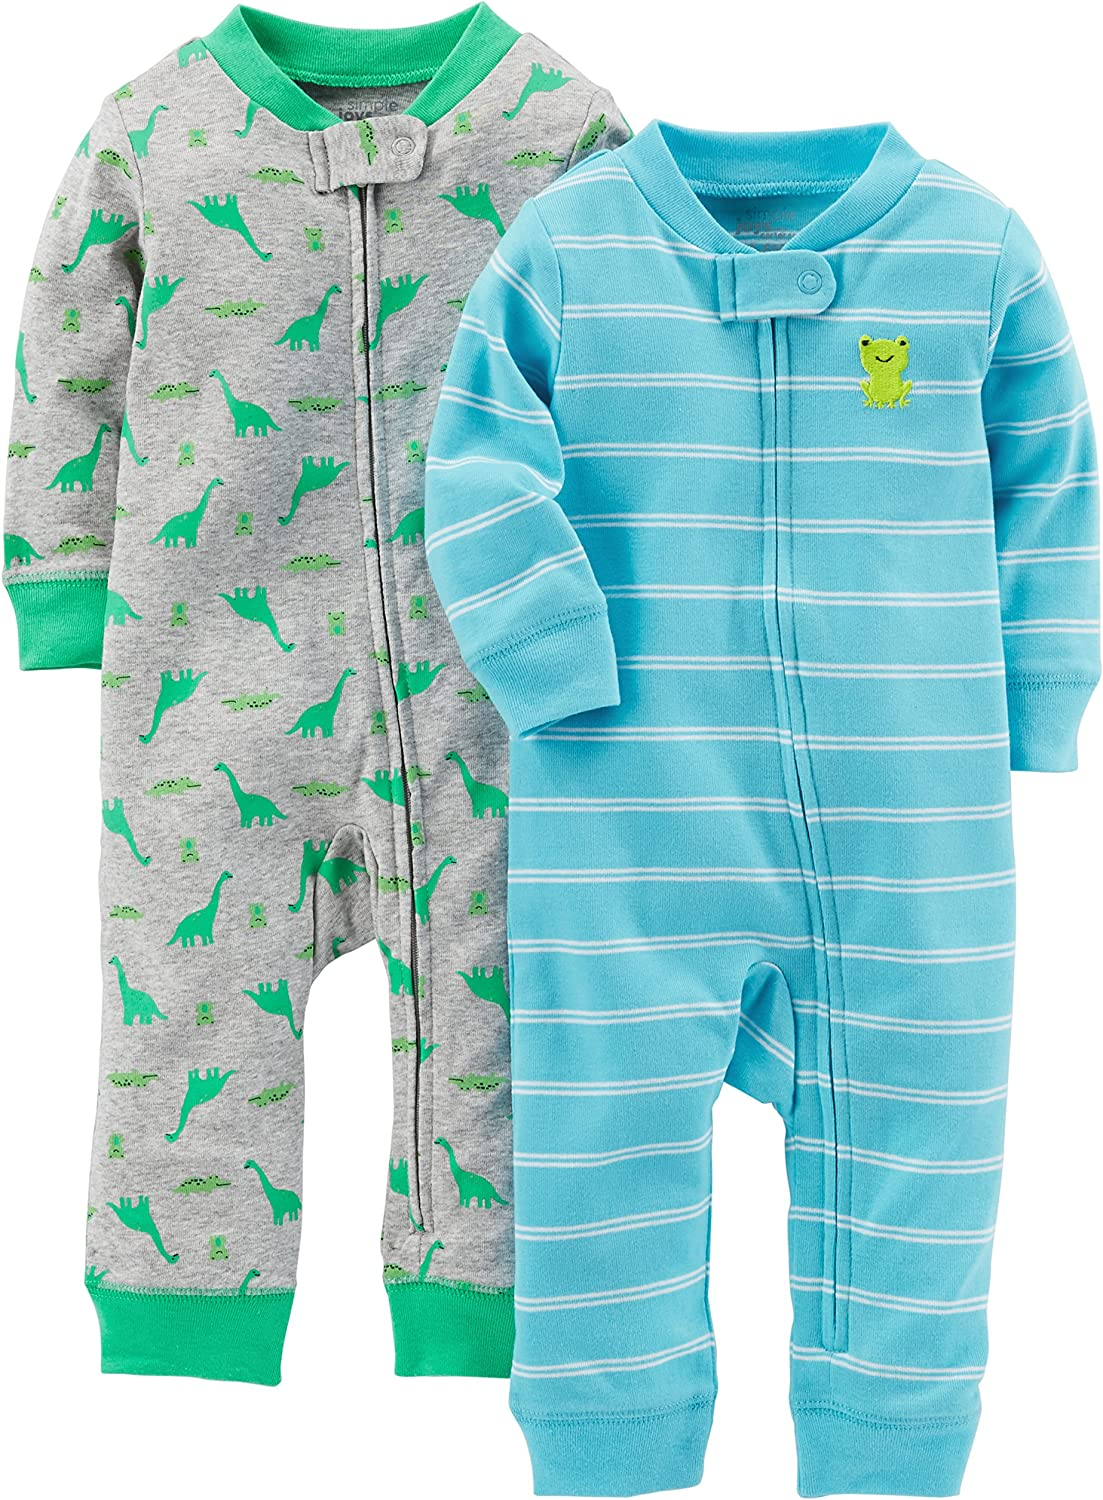 Simple Joys by Carter's Baby Boys' 2-Pack Cotton Footless Sleep and Play: Clothing